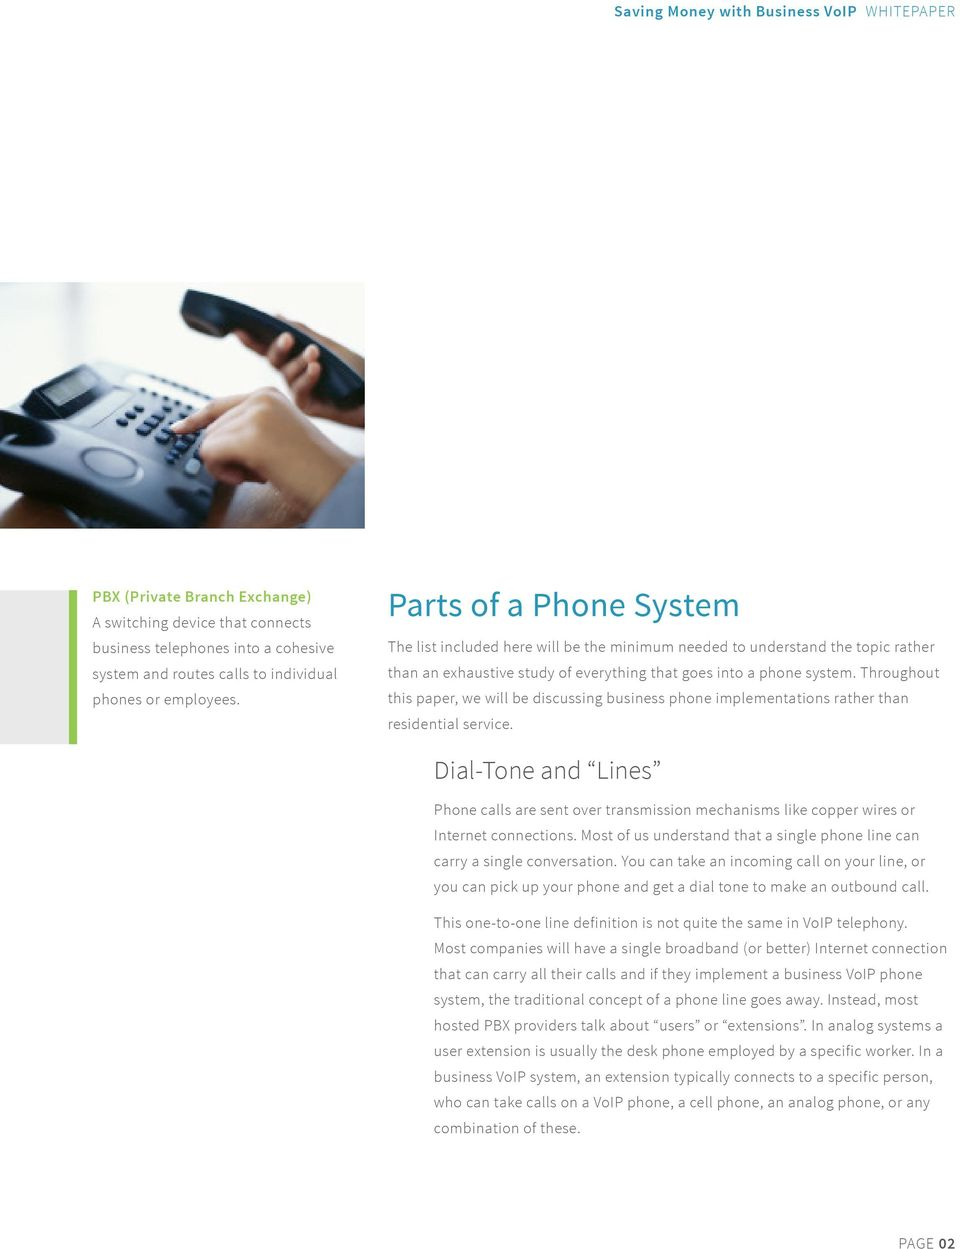 Throughout this paper, we will be discussing business phone implementations rather than residential service.